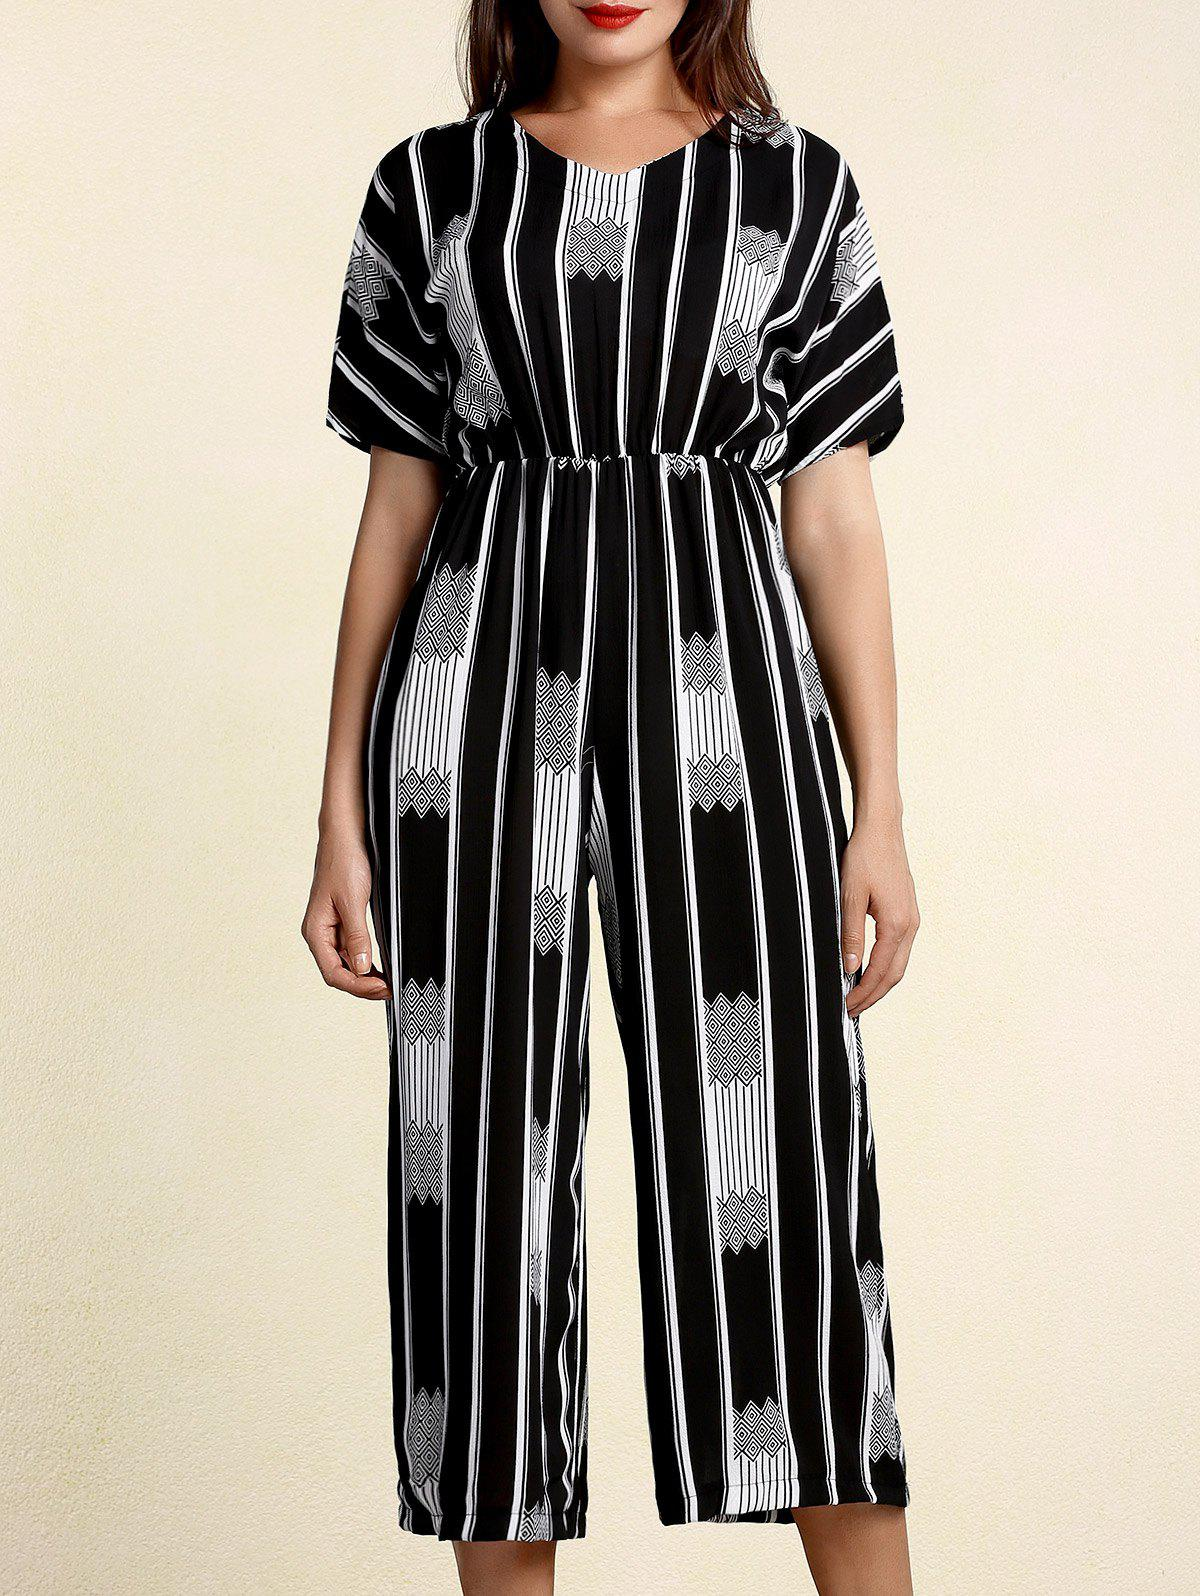 Chic V-Neck Short Sleeve Horizontal Line Jumpsuit For Women - WHITE/BLACK ONE SIZE(FIT SIZE XS TO M)